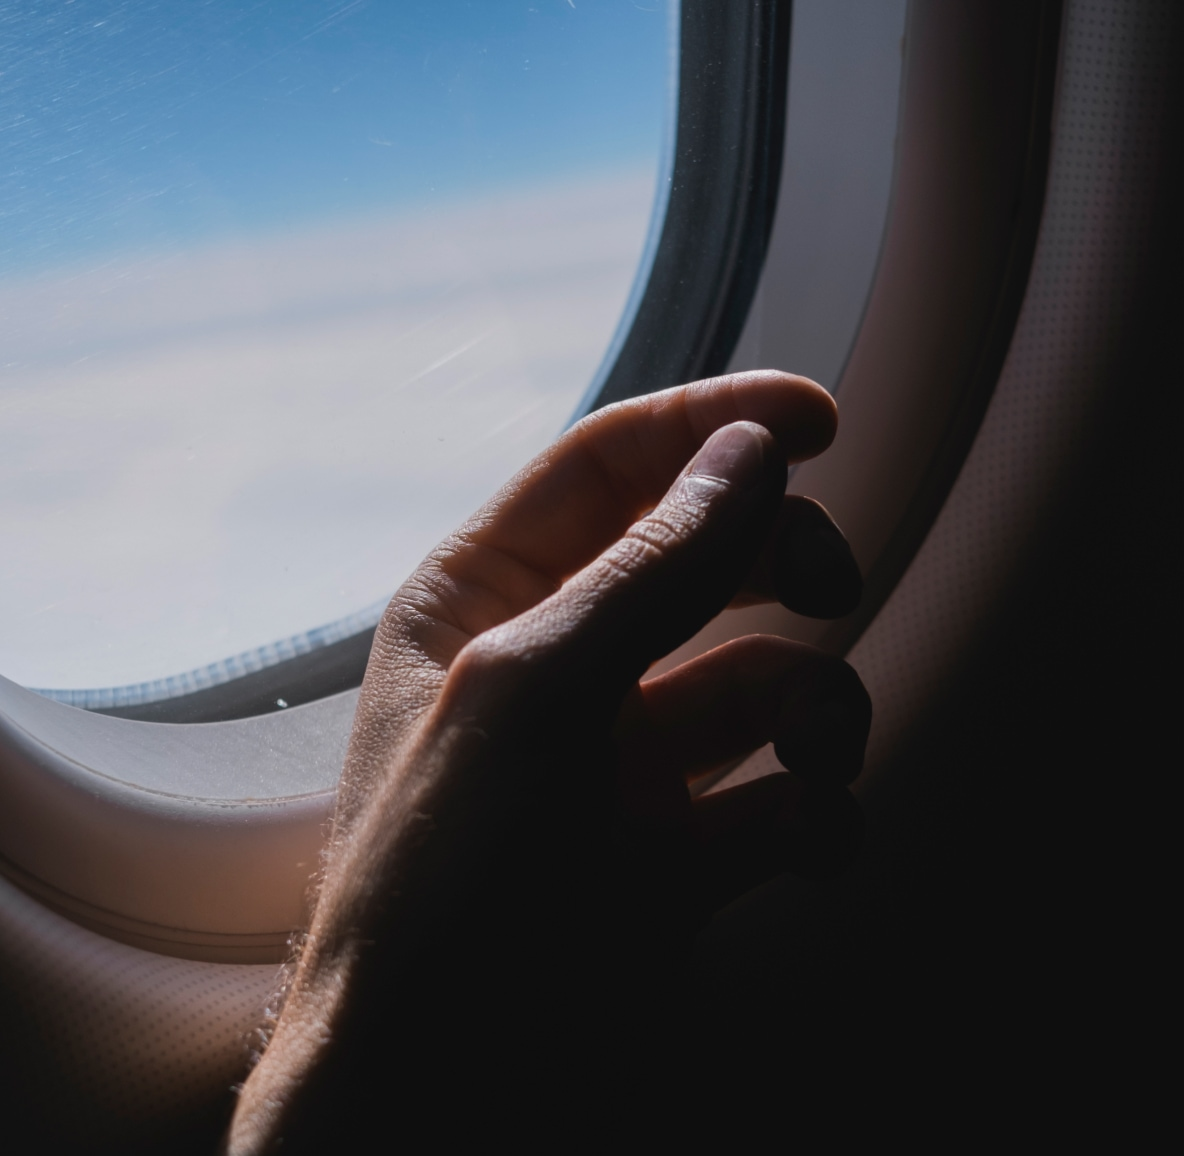 A hand in the shadow of an airplane window, clouds and blue sky in the background